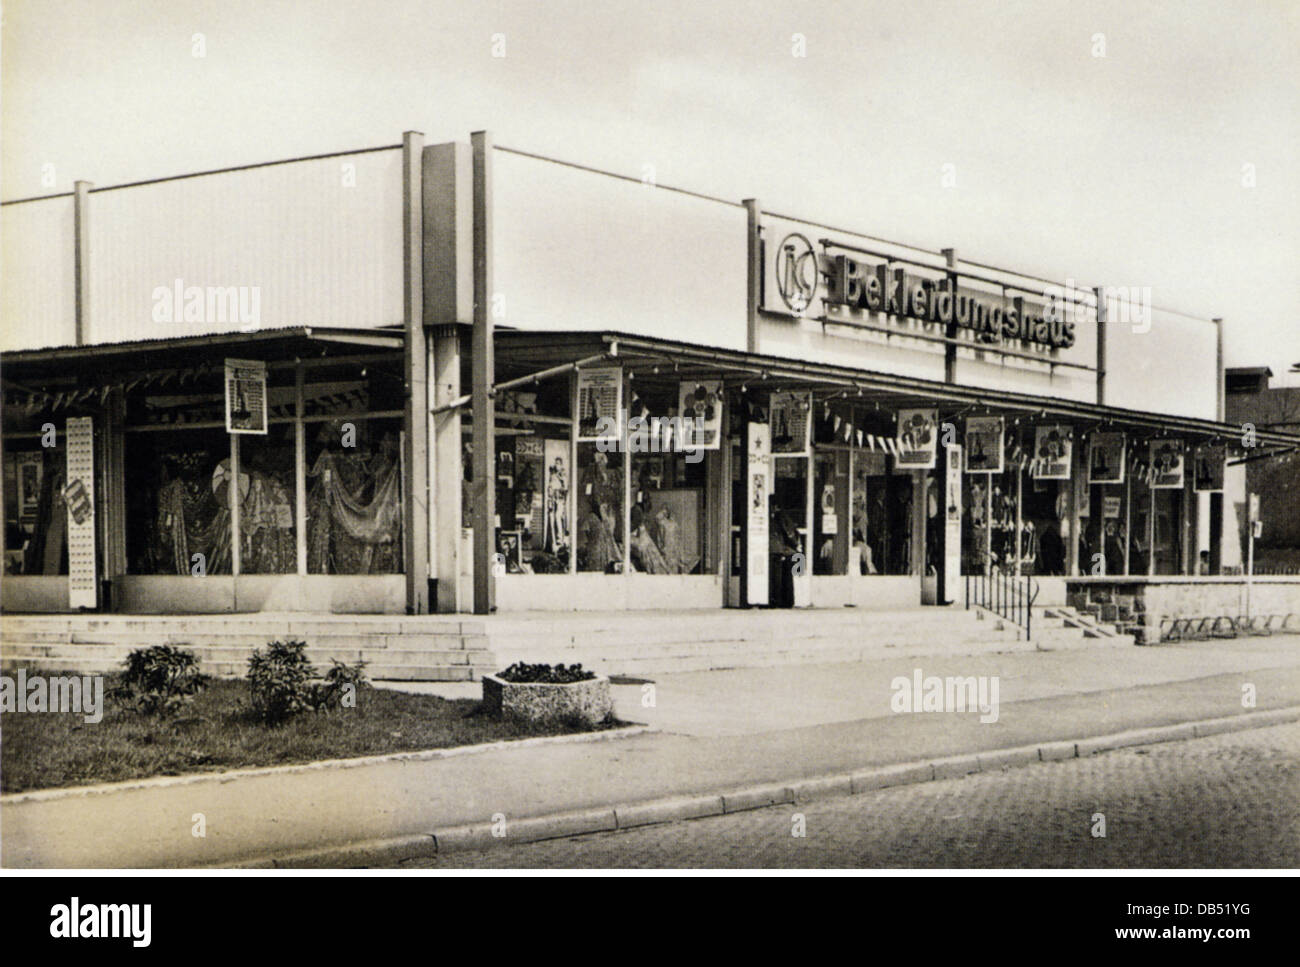 trade, shops, Konsum textile store, Floeha, exterior view, Black Forrest, Germany, 1970s, Additional-Rights-Clearences - Stock Image